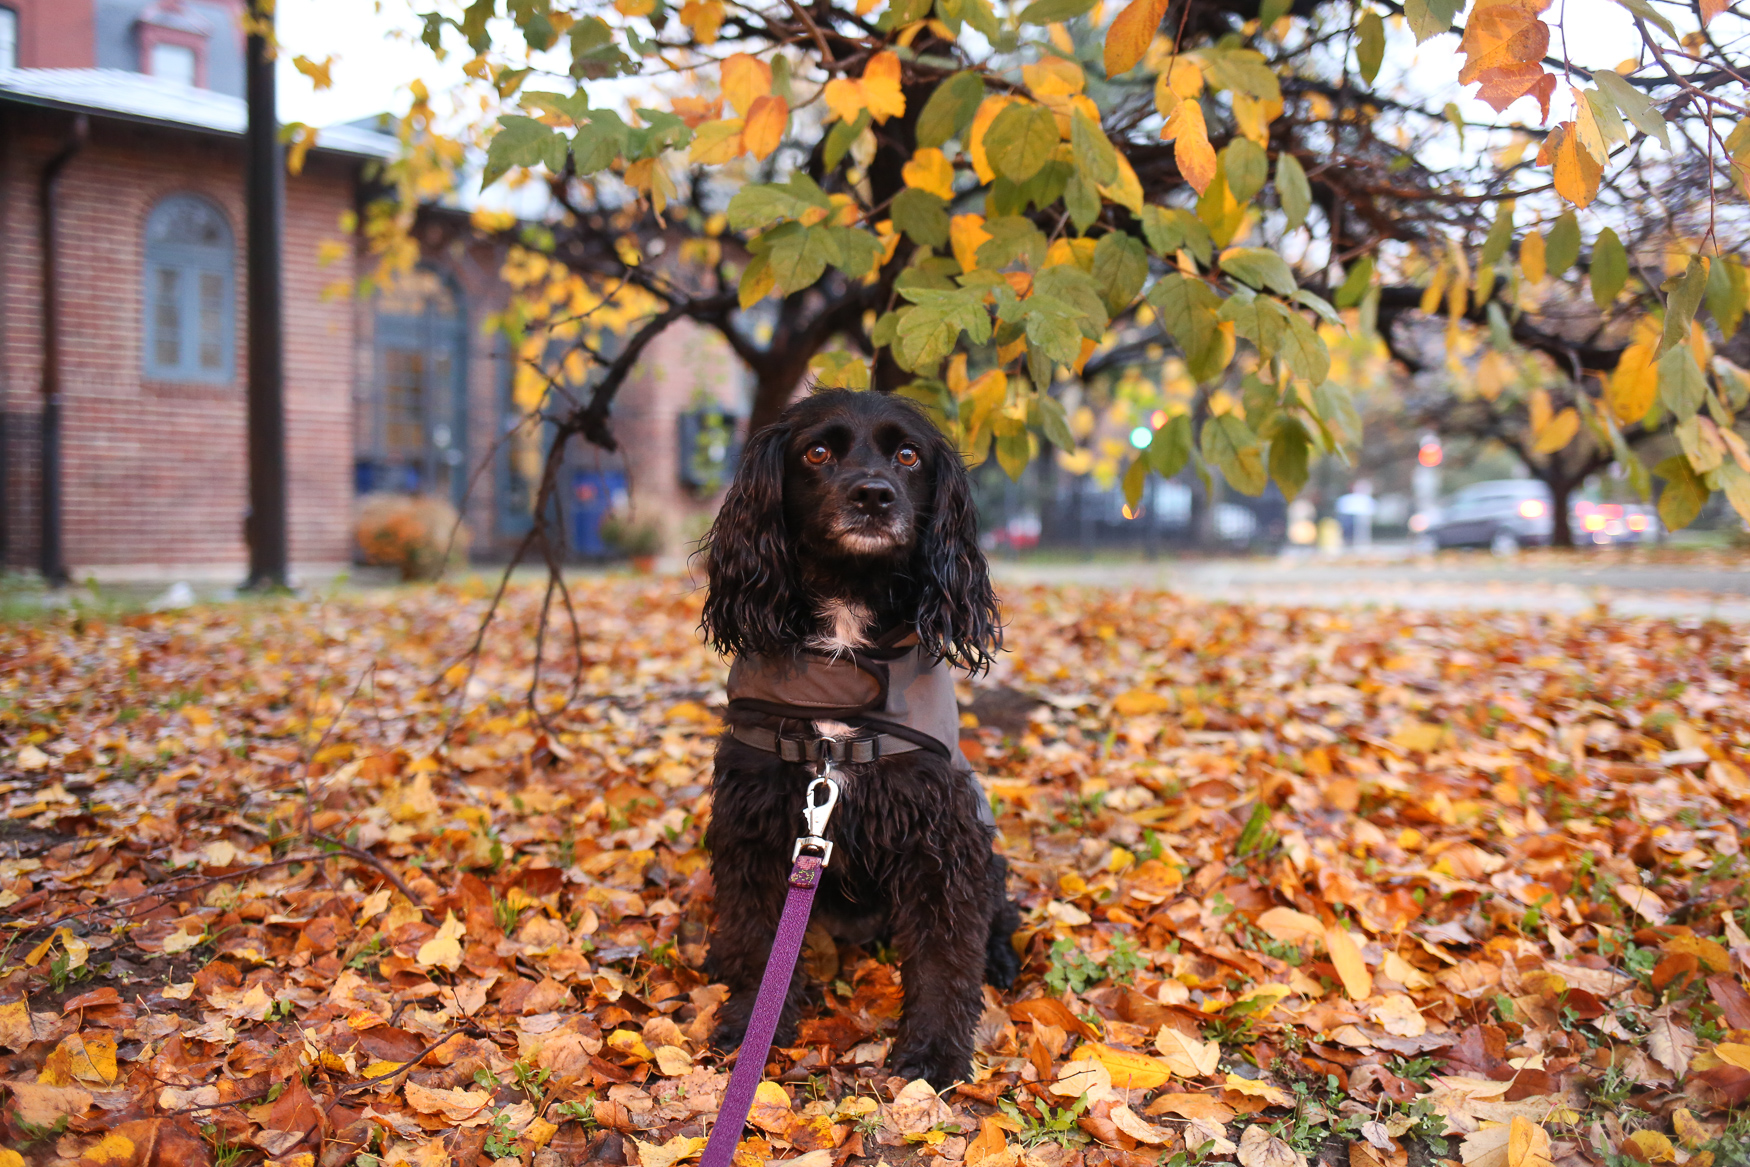 "Meet Rosie,{ } a four-year-old Cocker Spaniel mix. She is coming up on her first ""Gotcha Day"" anniversary as her mom adopted her from the ""Oldies But Goodies Cocker Spaniel Rescue"" in Virginia last November.{ }Rosie is a biiiig{ } cuddler -- she's perfectly content to sit in your lap or right beside you literally all day and night! She is also a trash panda on walks - she'll eat anything if you're not careful, and you've probably never noticed the amount of crazy stuff all over D.C. sidewalks unless you also have a dog. Rosie has made friends with with the dishwasher and hair dryer, but the vacuum has yet to be trusted. You can follow all of Rosie's adventures on her Instagram:{ }@DistrictRosie.{ }If you're interested in having your pup featured, drop us a line at aandrade@dcrefined.com (Amanda Andrade-Rhoades/DC Refined)"